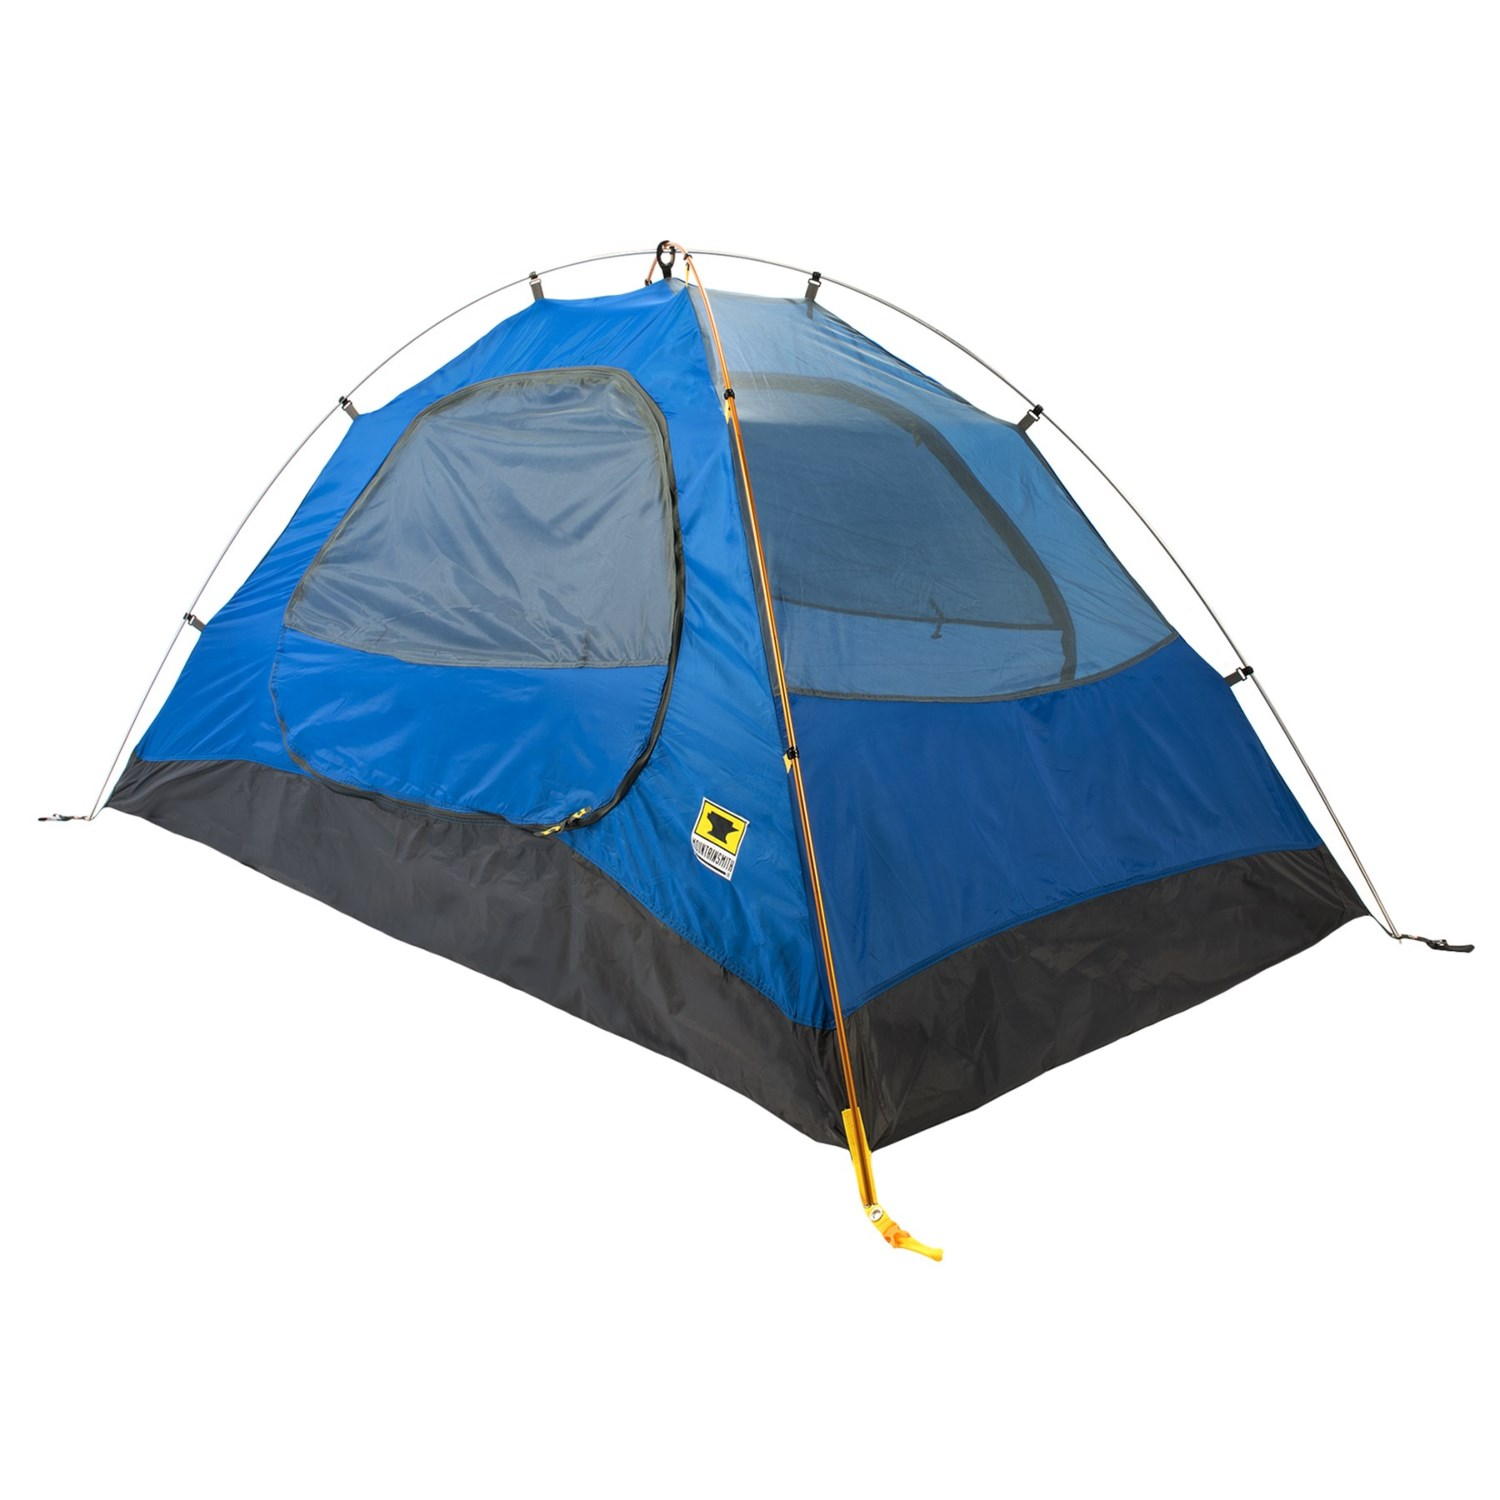 Mountainsmith Celestial Tent - 2-Person 3-Season in Lotus Blue ...  sc 1 st  Sierra Trading Post & Mountainsmith Celestial Tent - 2-Person 3-Season - Save 33%